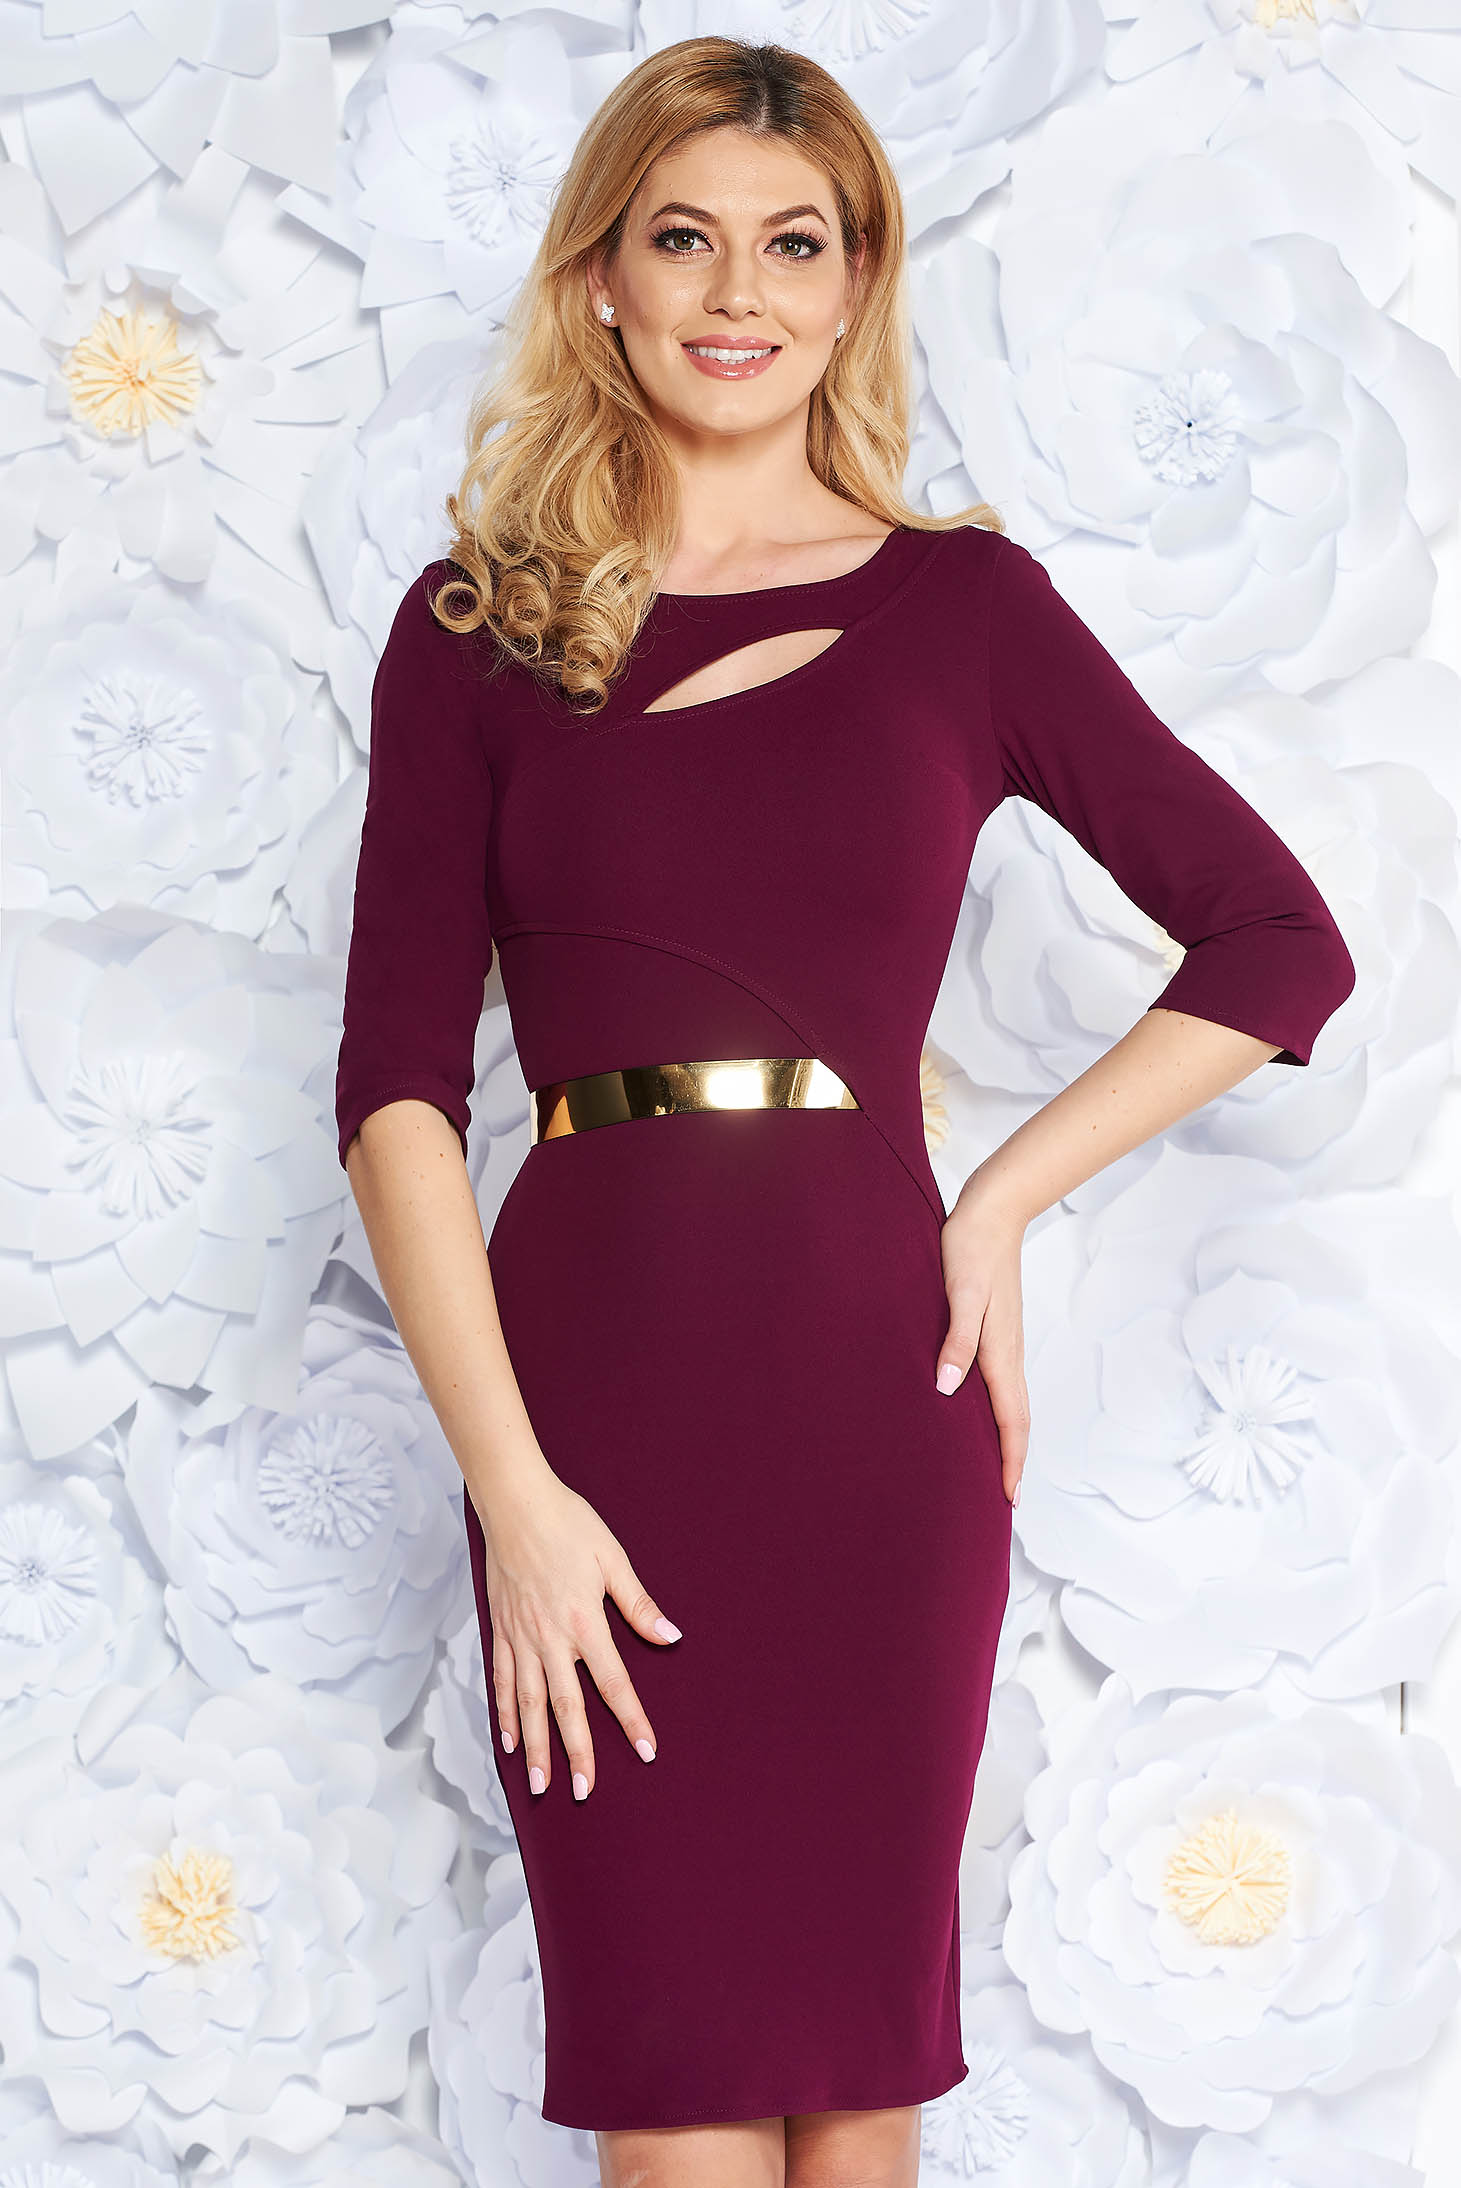 b837d74dd8 purple-elegant-pencil-dress-from-elastic-fabric-cu-S040413-5-408822.jpg